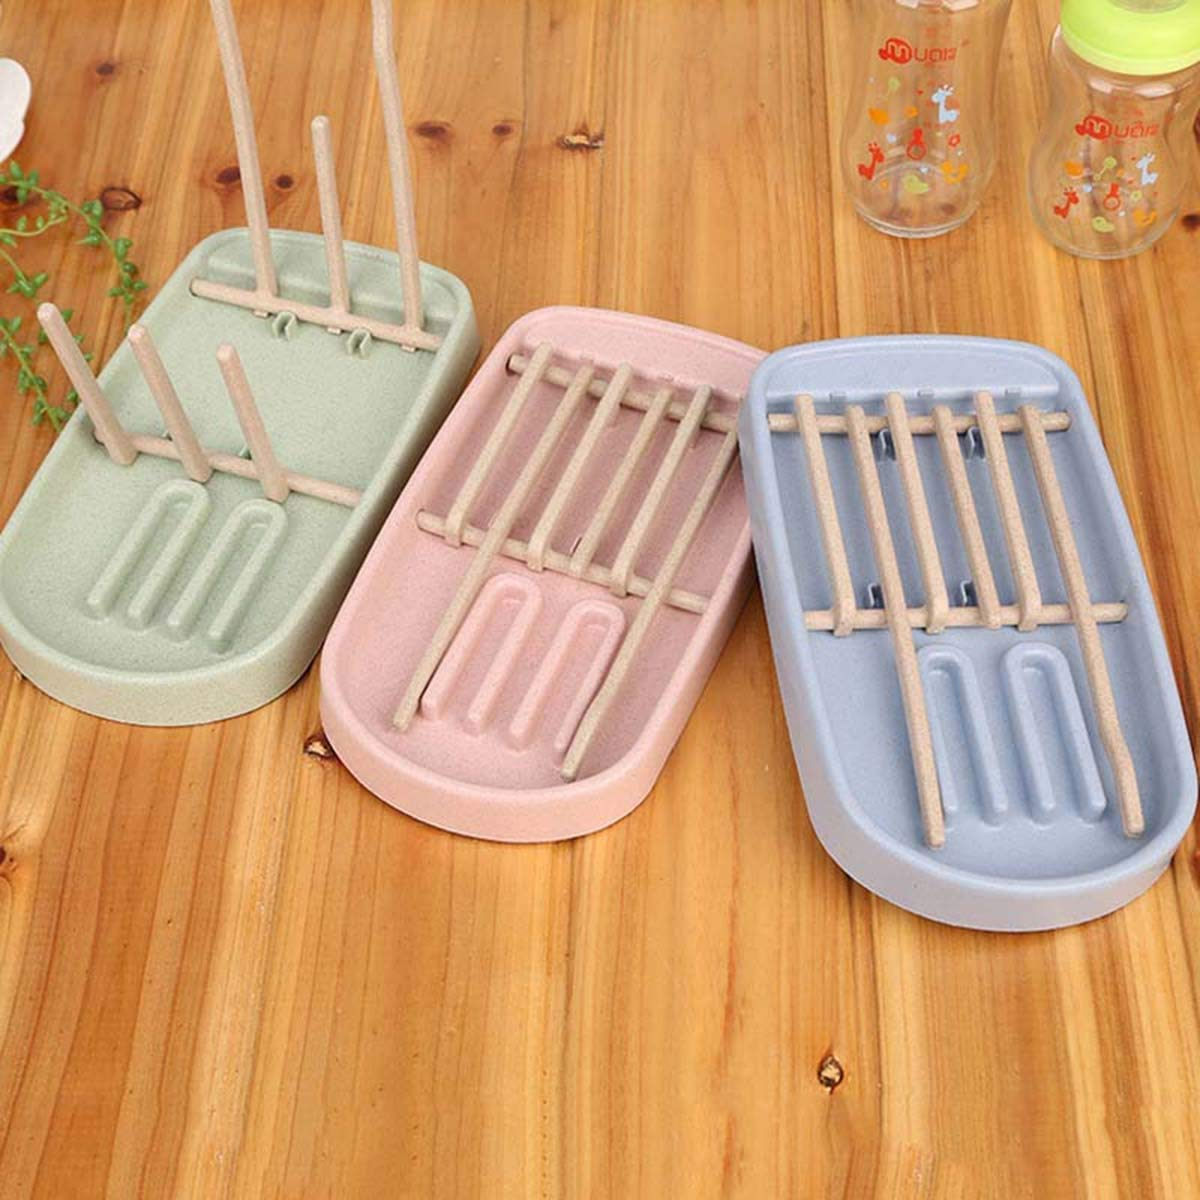 Color : Blue Tianhaik Baby Bottle Drying Rack Stand Holder Feeding Bottle Cleaning Cup Nipple Foldable Shelf Drying for Bottles Drainer Countertop Drying Rack